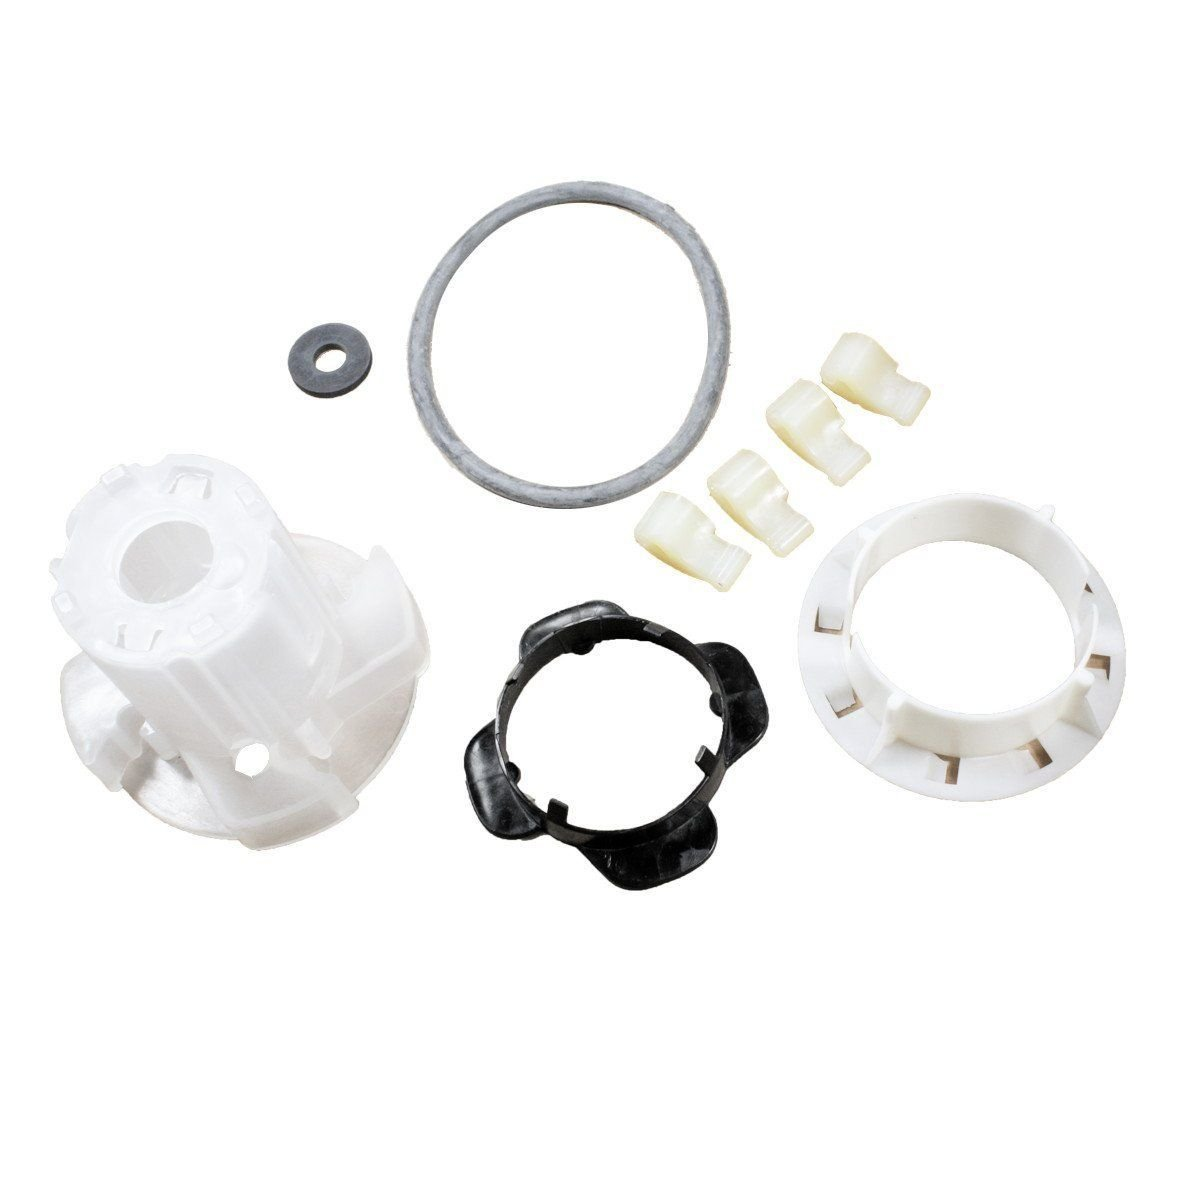 Ximoon Agitator Repair Kit 285811 Washer Cam Kit Replacement for Whirlpool Kenmore Washer Parts AP3138838